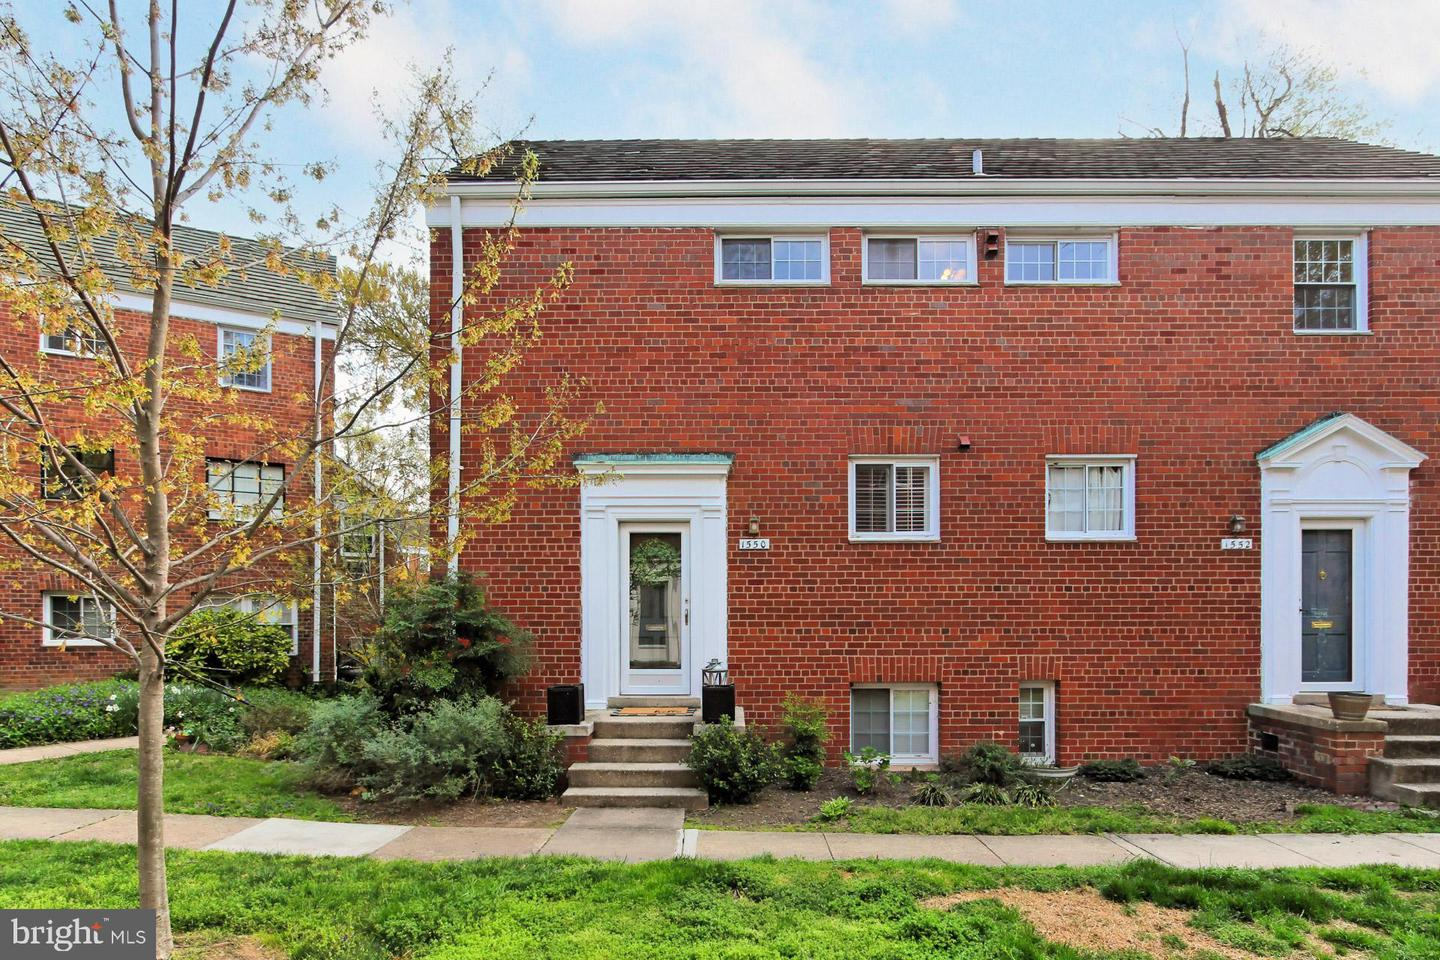 1550 MOUNT EAGLE PLACE, ALEXANDRIA, Virginia 22302, 2 Bedrooms Bedrooms, ,1 BathroomBathrooms,Residential,For Sale,ParkFairfax,MOUNT EAGLE,VAAX258516